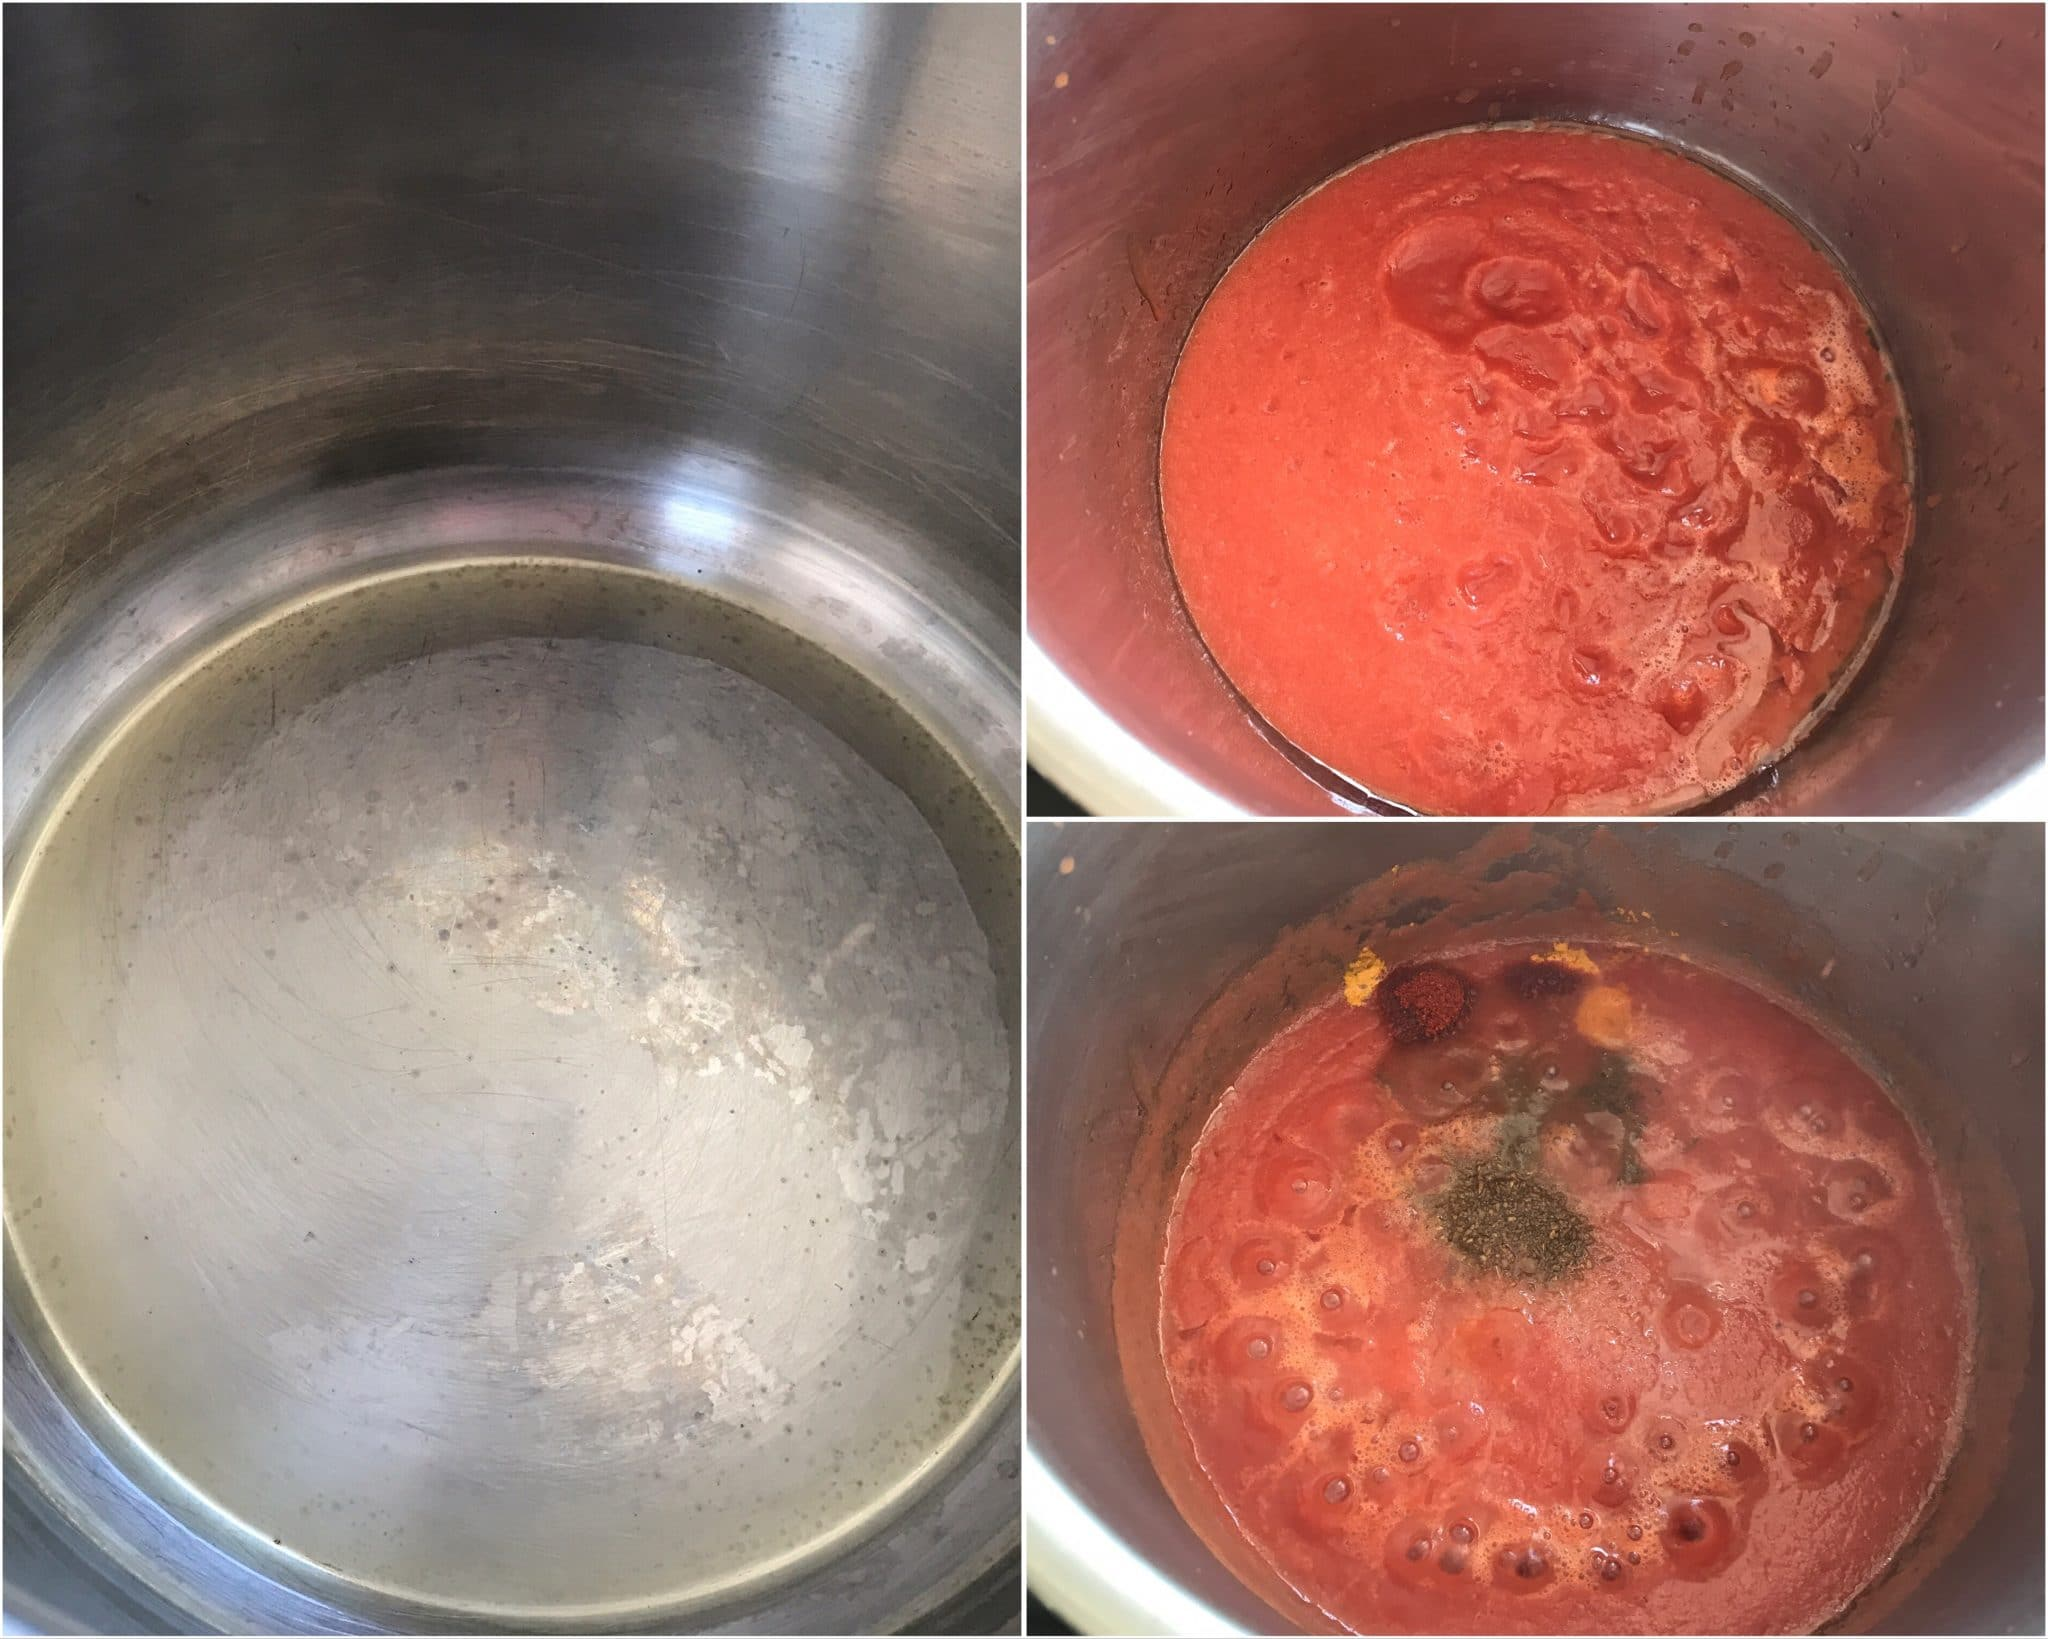 A box filled with Pot and tomato sauce